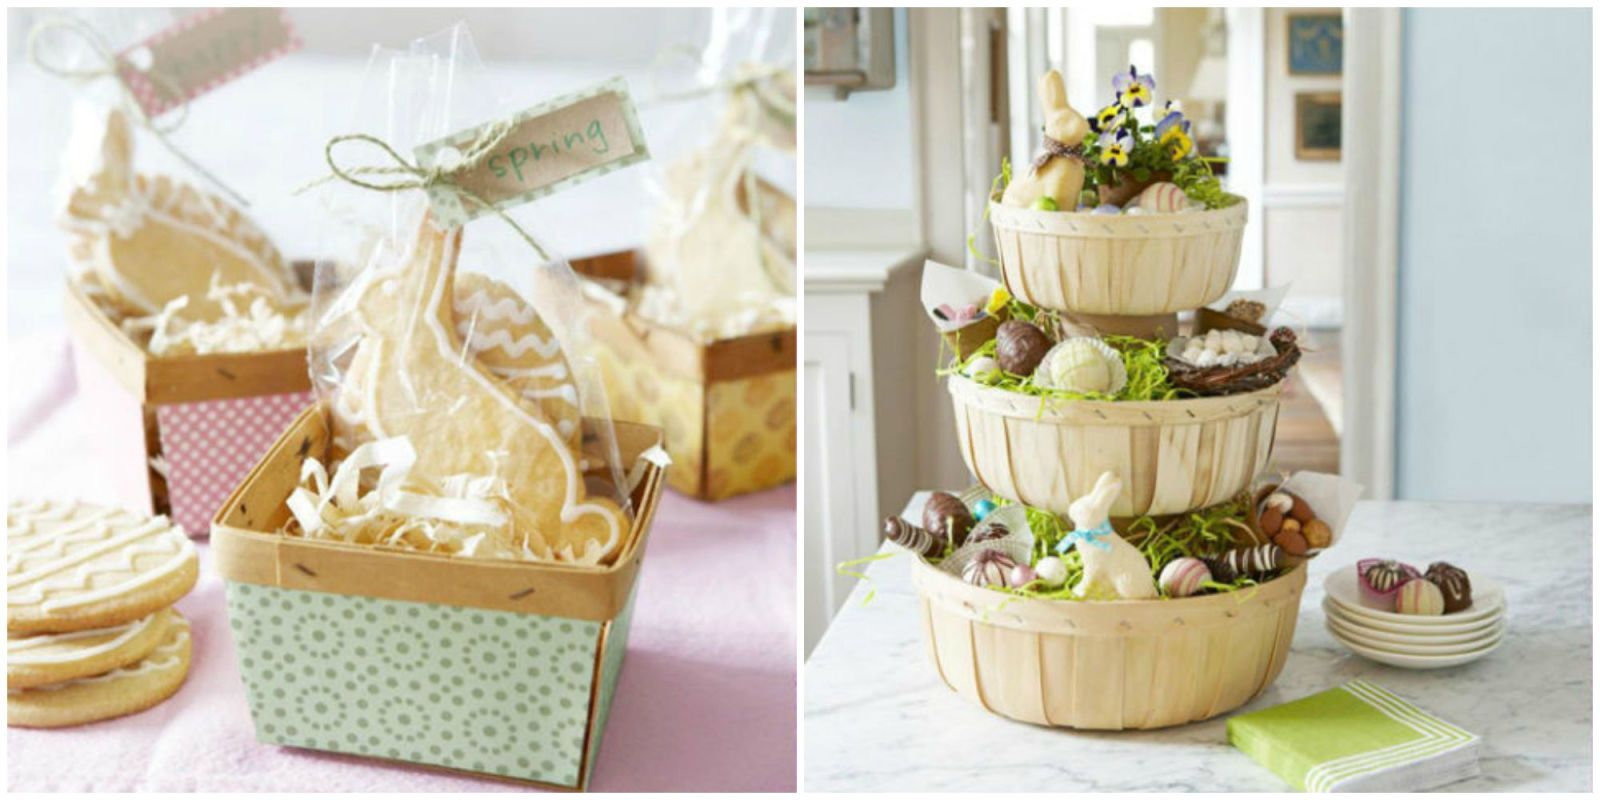 38 Creative Easter Basket Ideas That You Can Make For Your Whole Family Easter Basket Diy Easter Baskets Homemade Easter Baskets